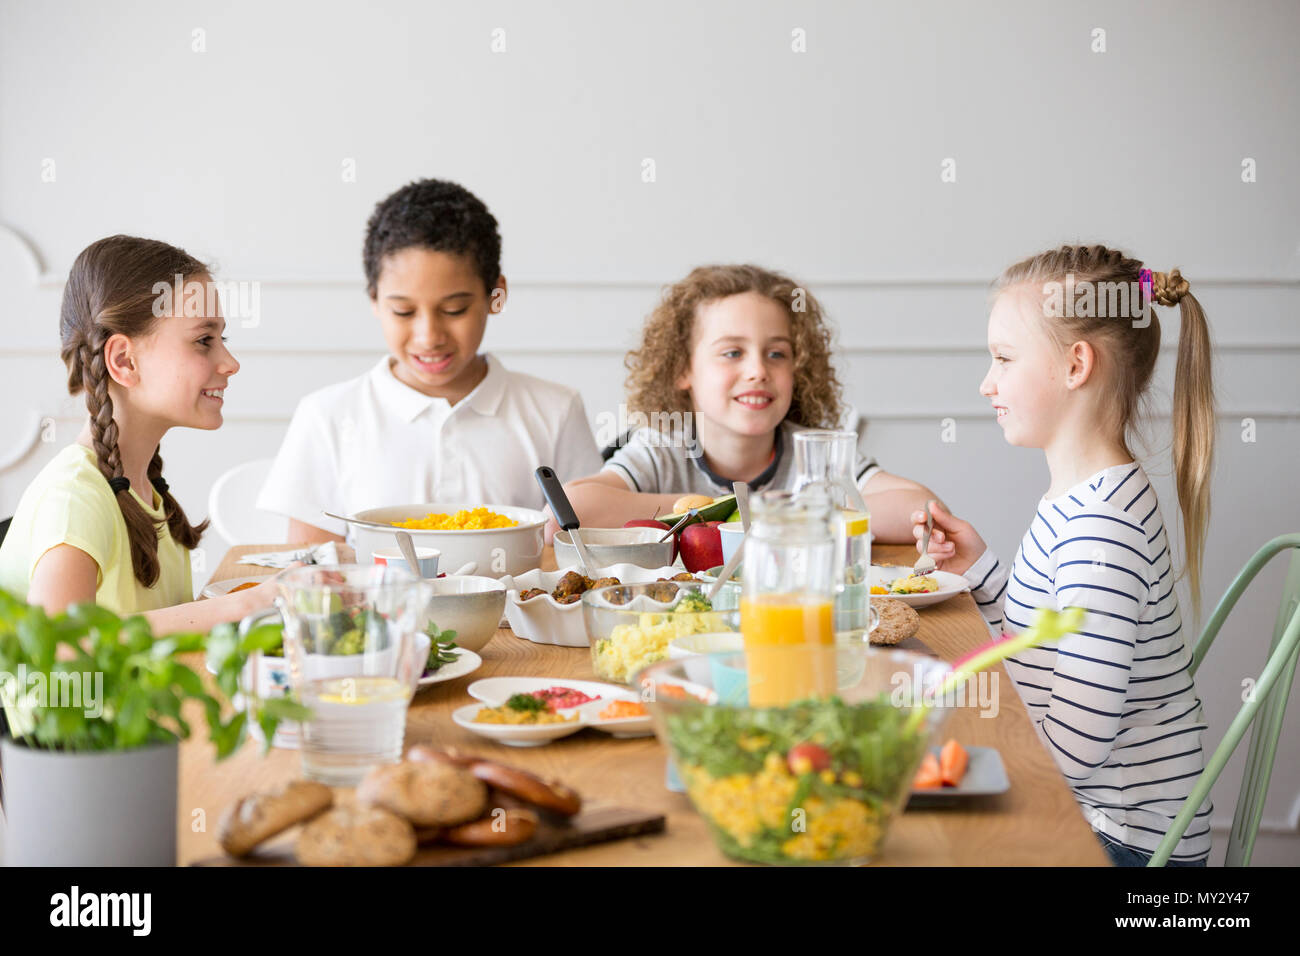 Smiling kids eating dinner while celebrating children's day at home - Stock Image